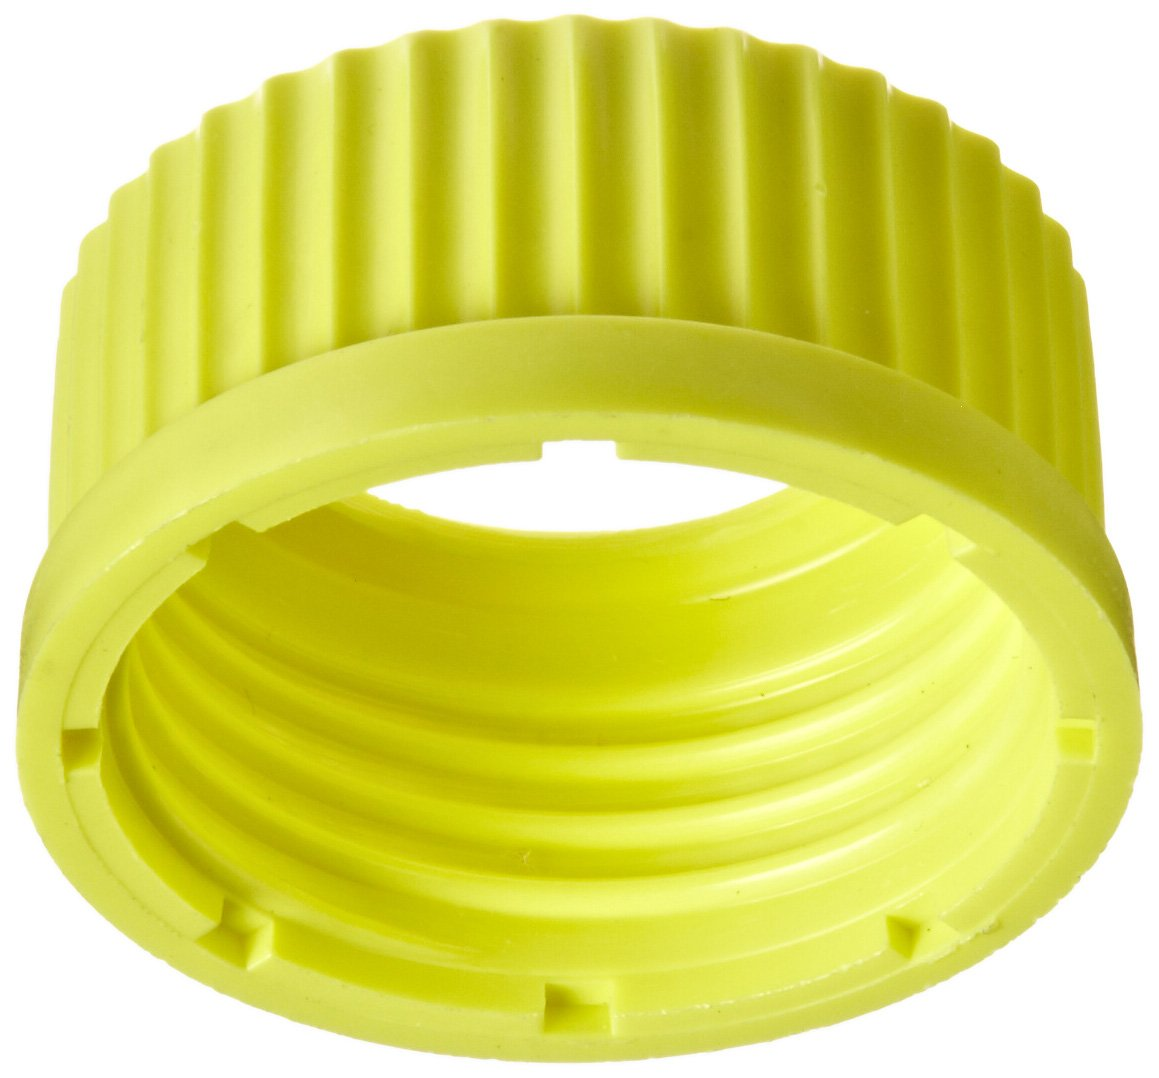 Chemglass CLS-1481-23 Polypropylene Solid Open Top Cap with GL-45 GPI Thread Yellow Chemglass Life Sciences Pack of 6